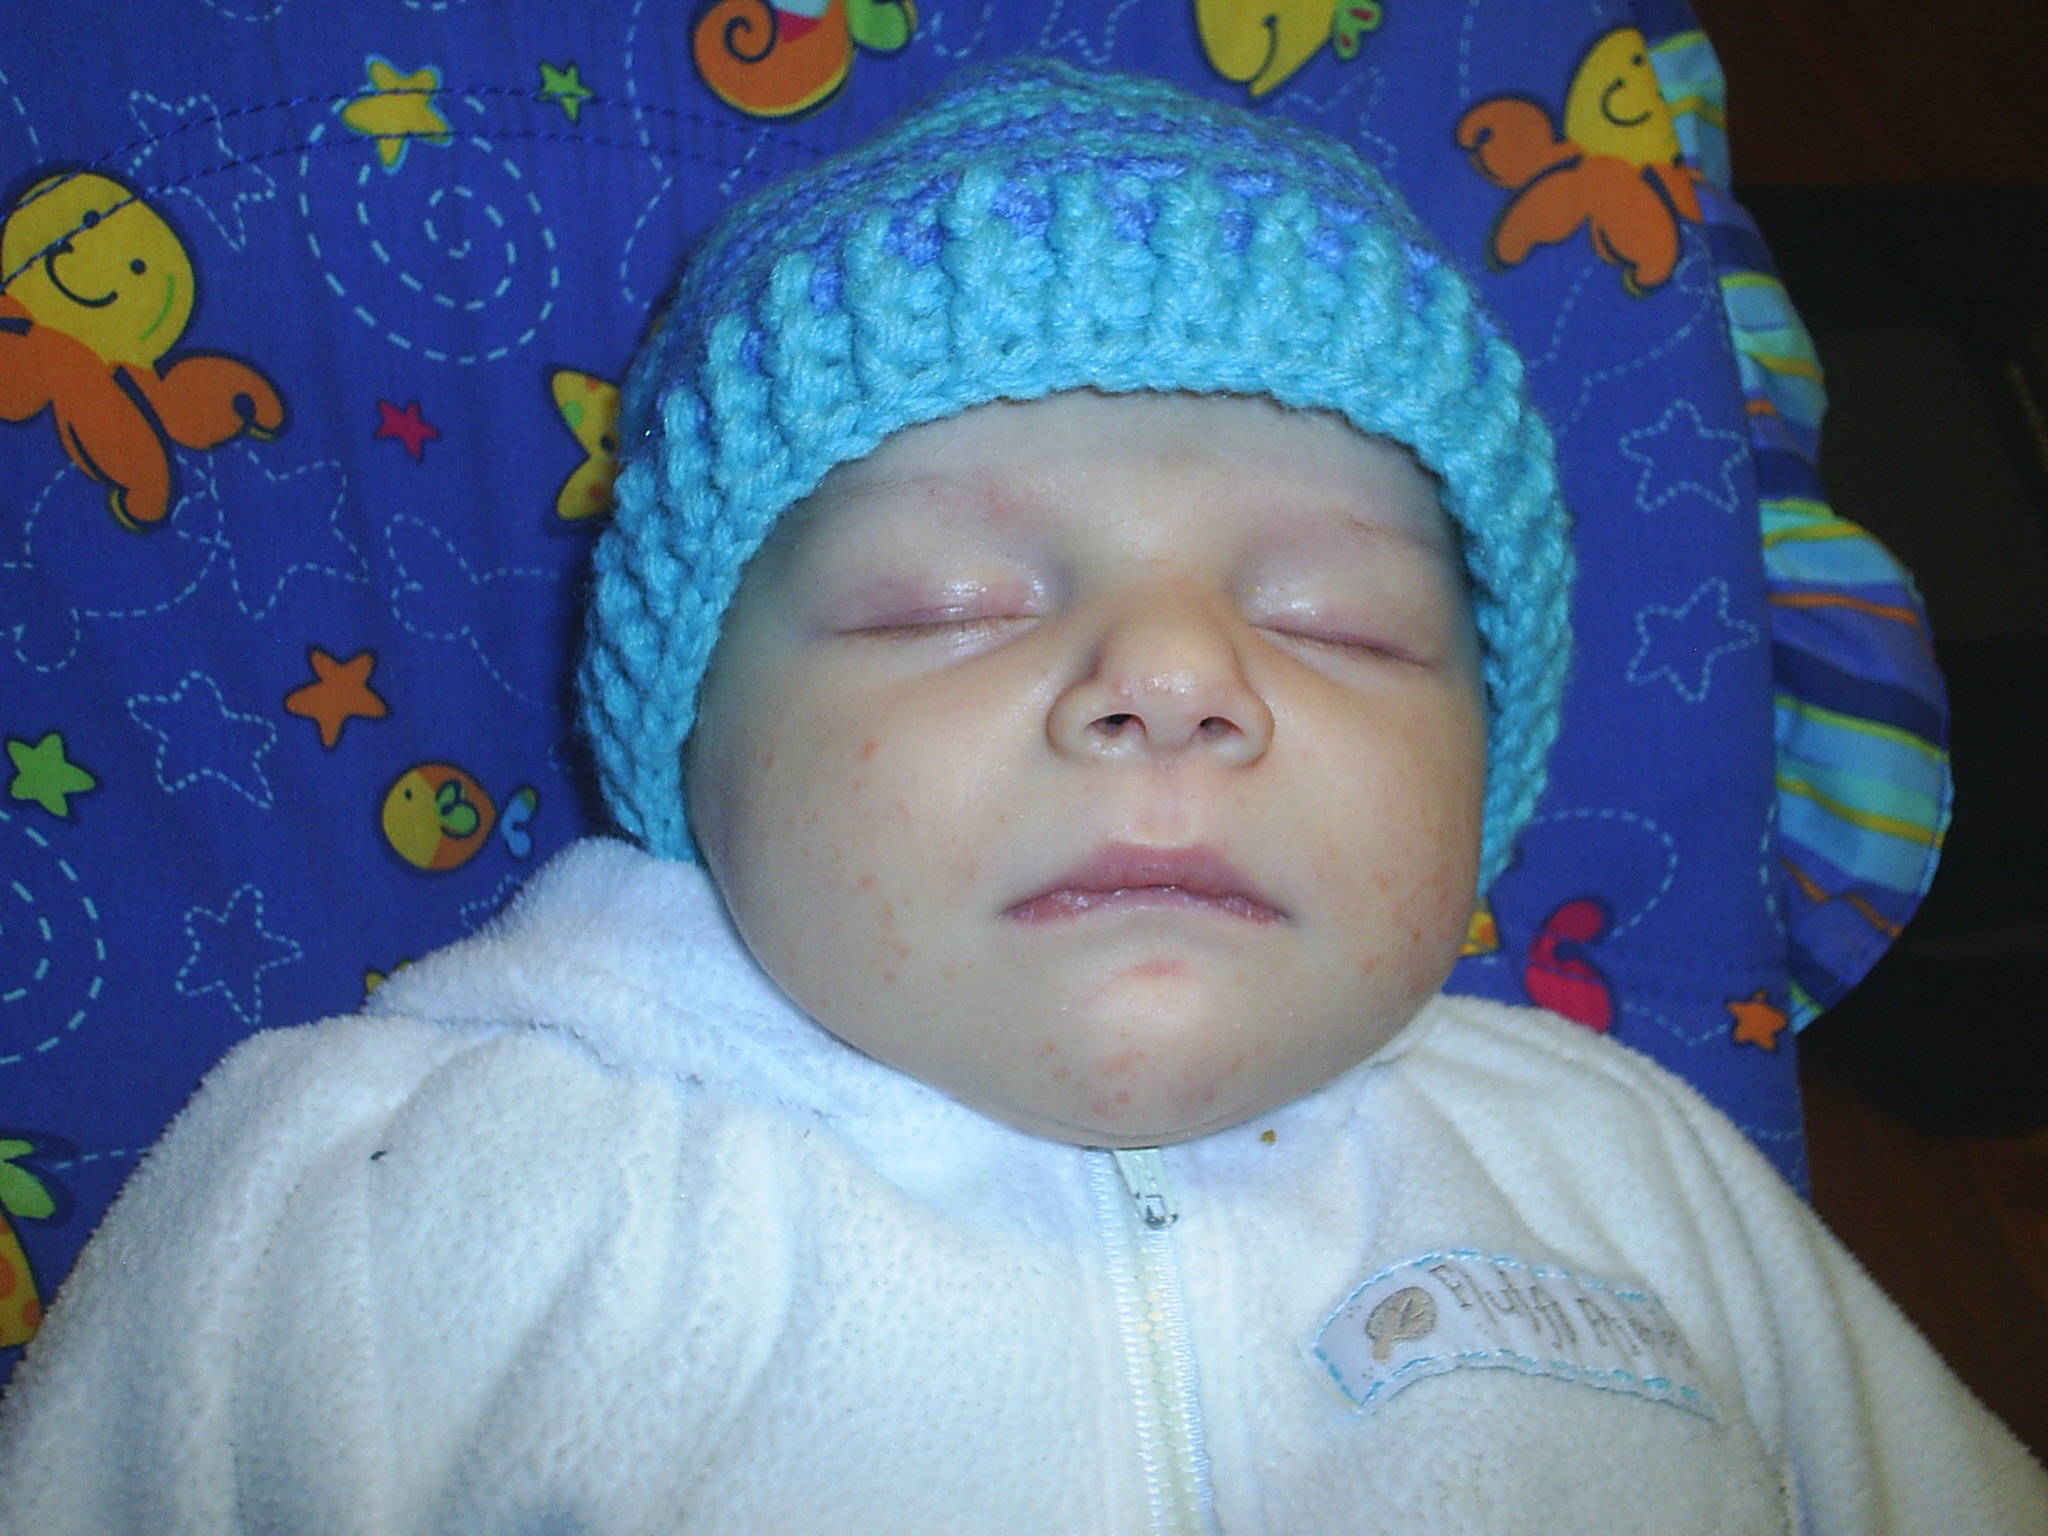 crochet baby hat pattern | eBay - Electronics, Cars, Fashion